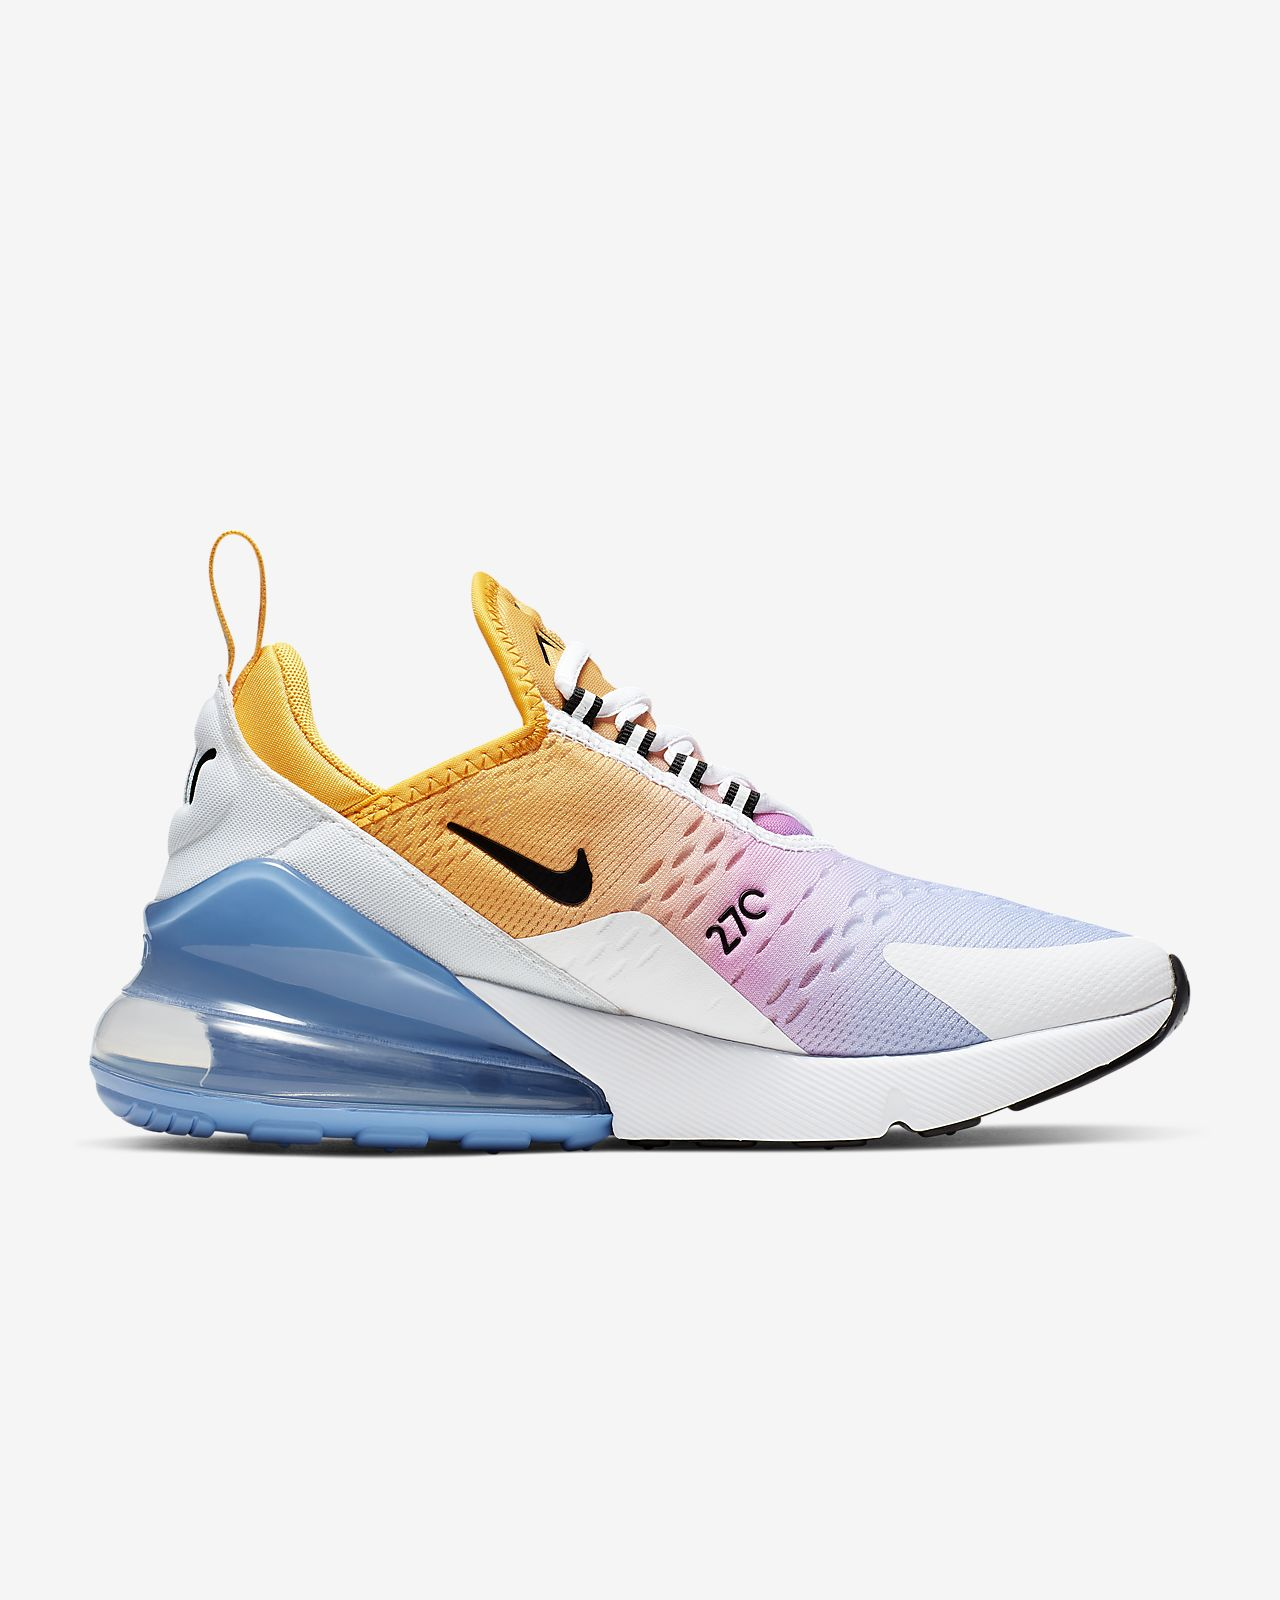 2018 Latest Nike Air Max 270 Real Womens Running Shoes Pink